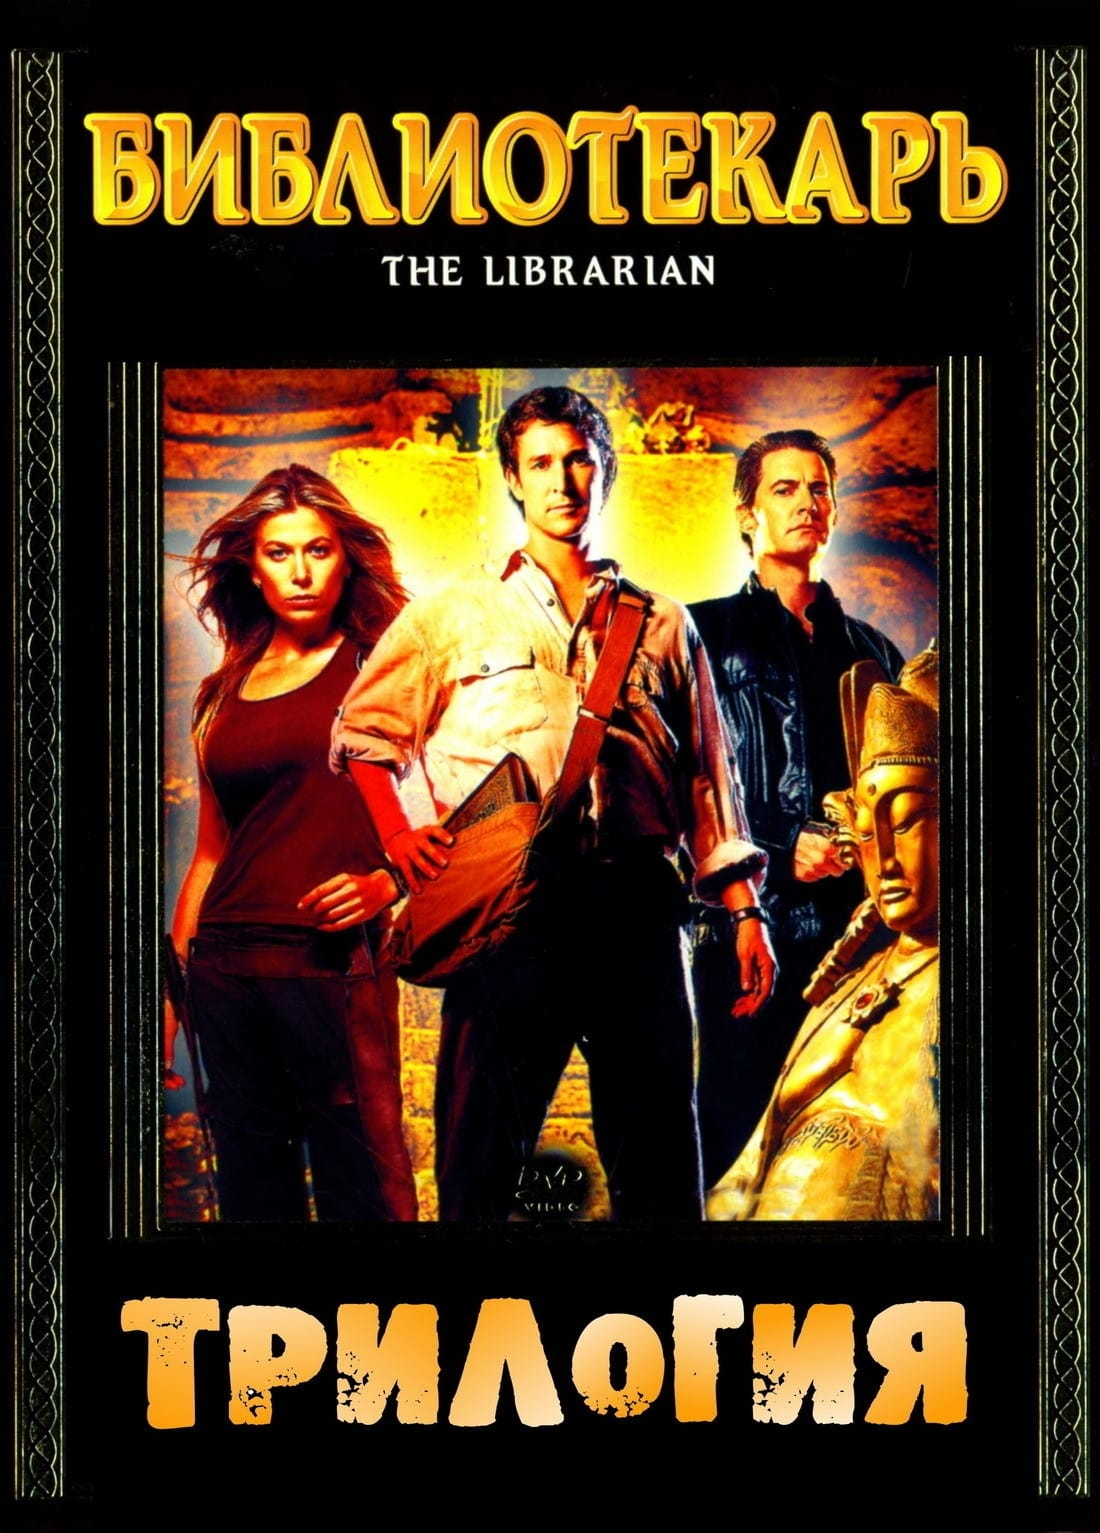 all movies from the librarian collection saga are on